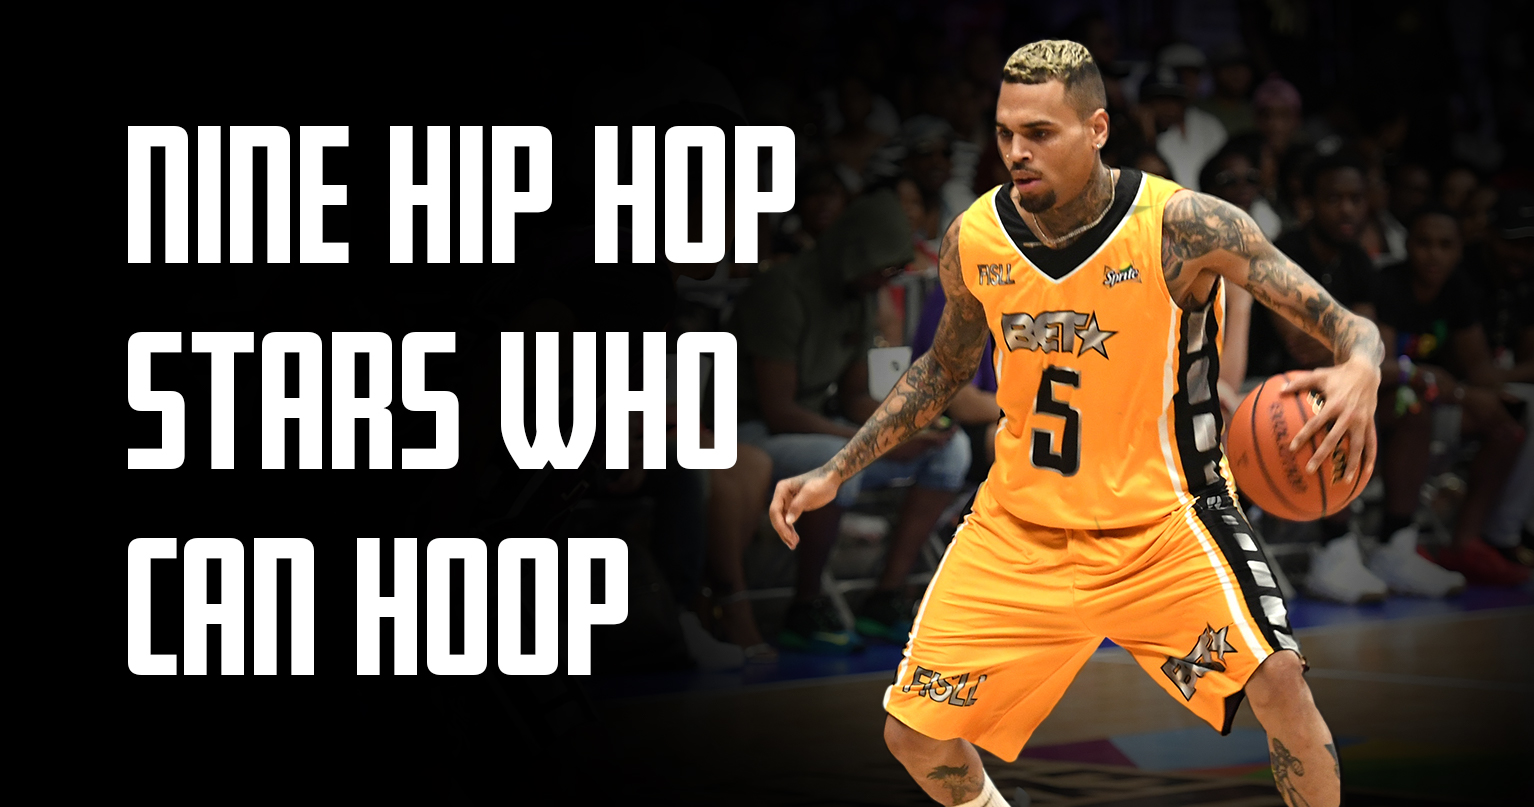 9 Hip-Hop Stars Who Can Really Hoop